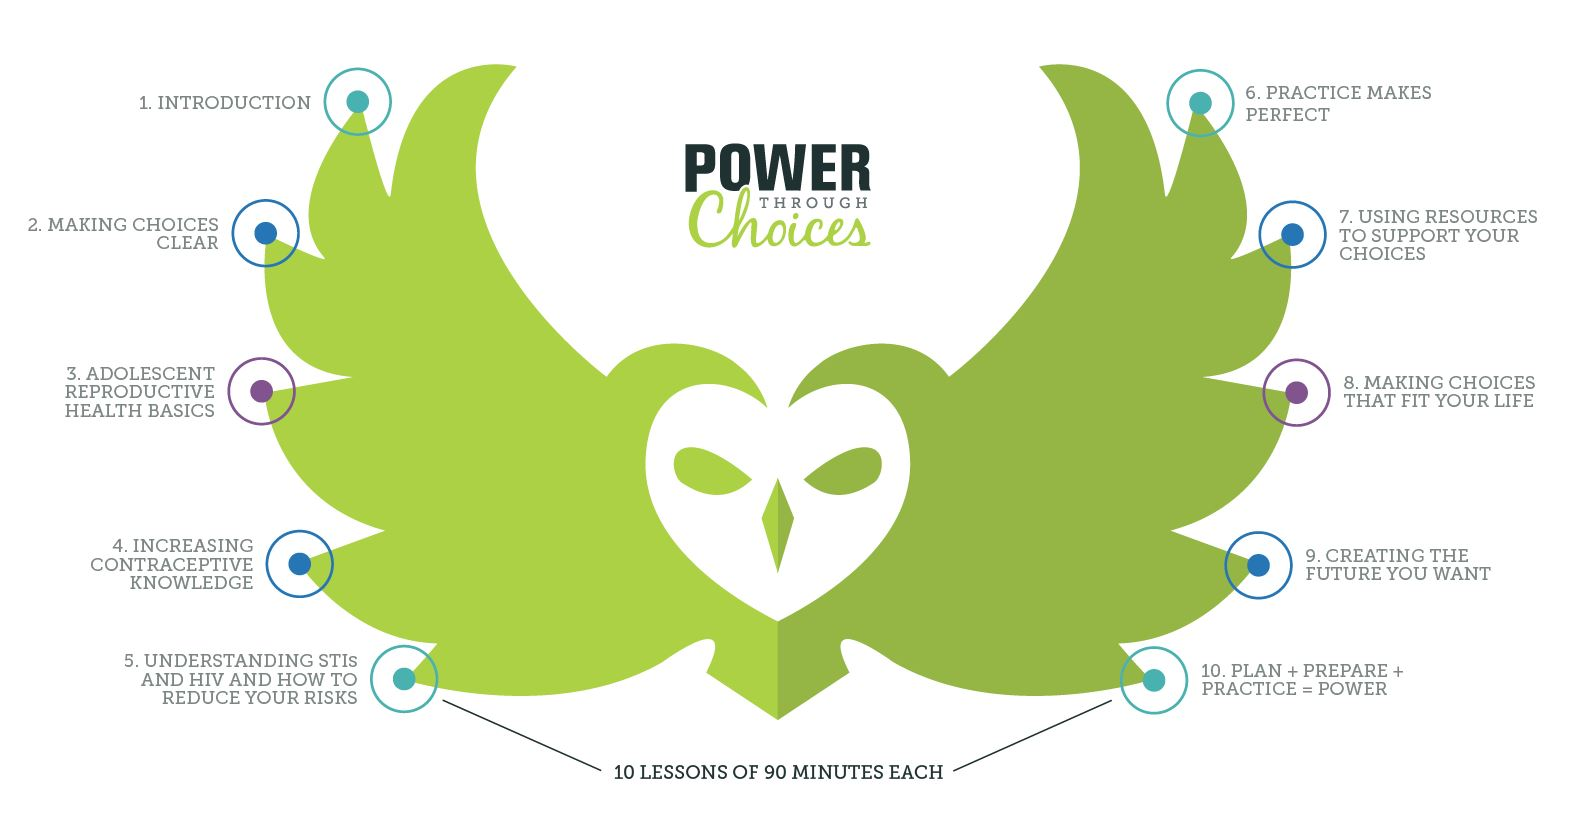 Image of owl from Power Through Choices logo, with the 10 lessons identified from the curriculum